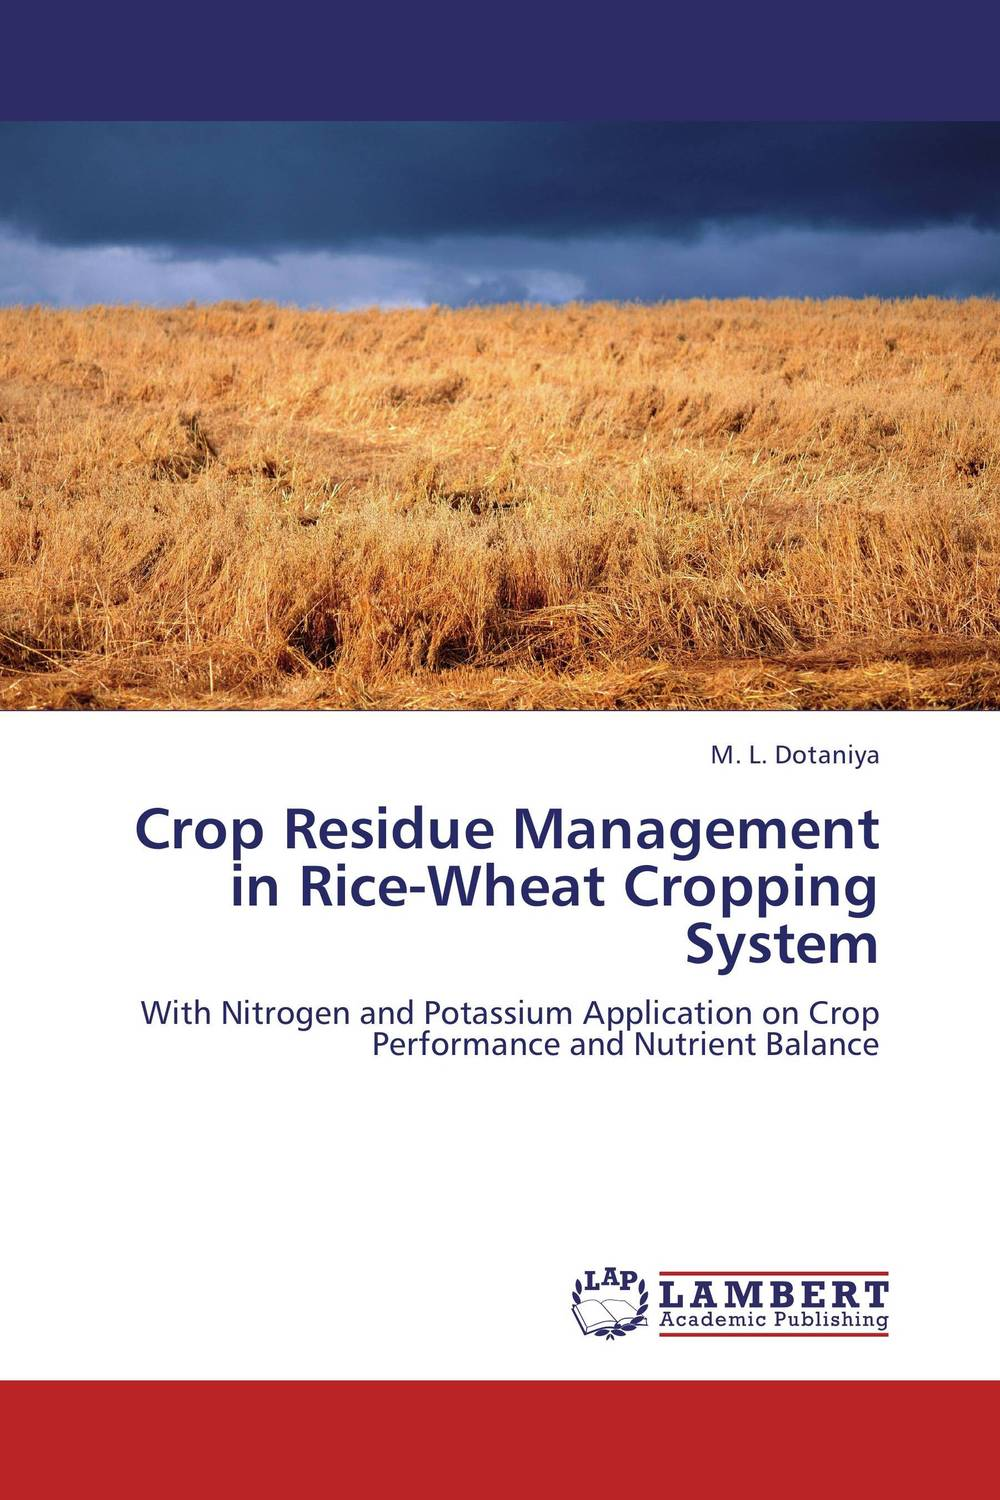 Crop Residue Management in Rice-Wheat Cropping System residue management device for no till drills